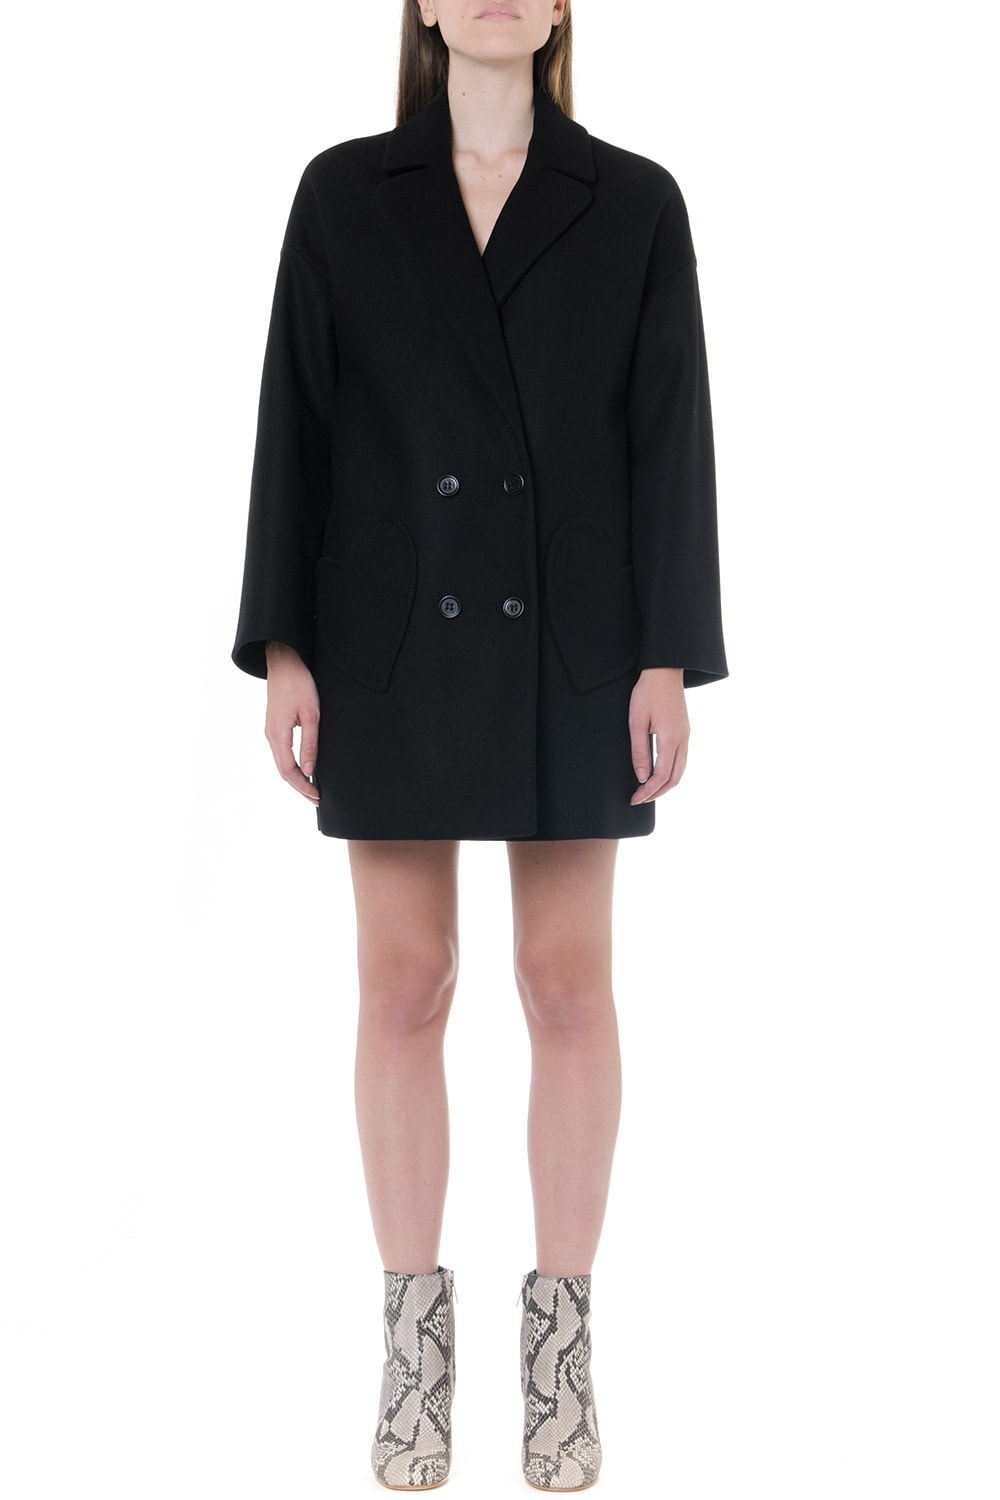 RED Valentino Wool-cashmere Blend Oversized Double Breasted Coat